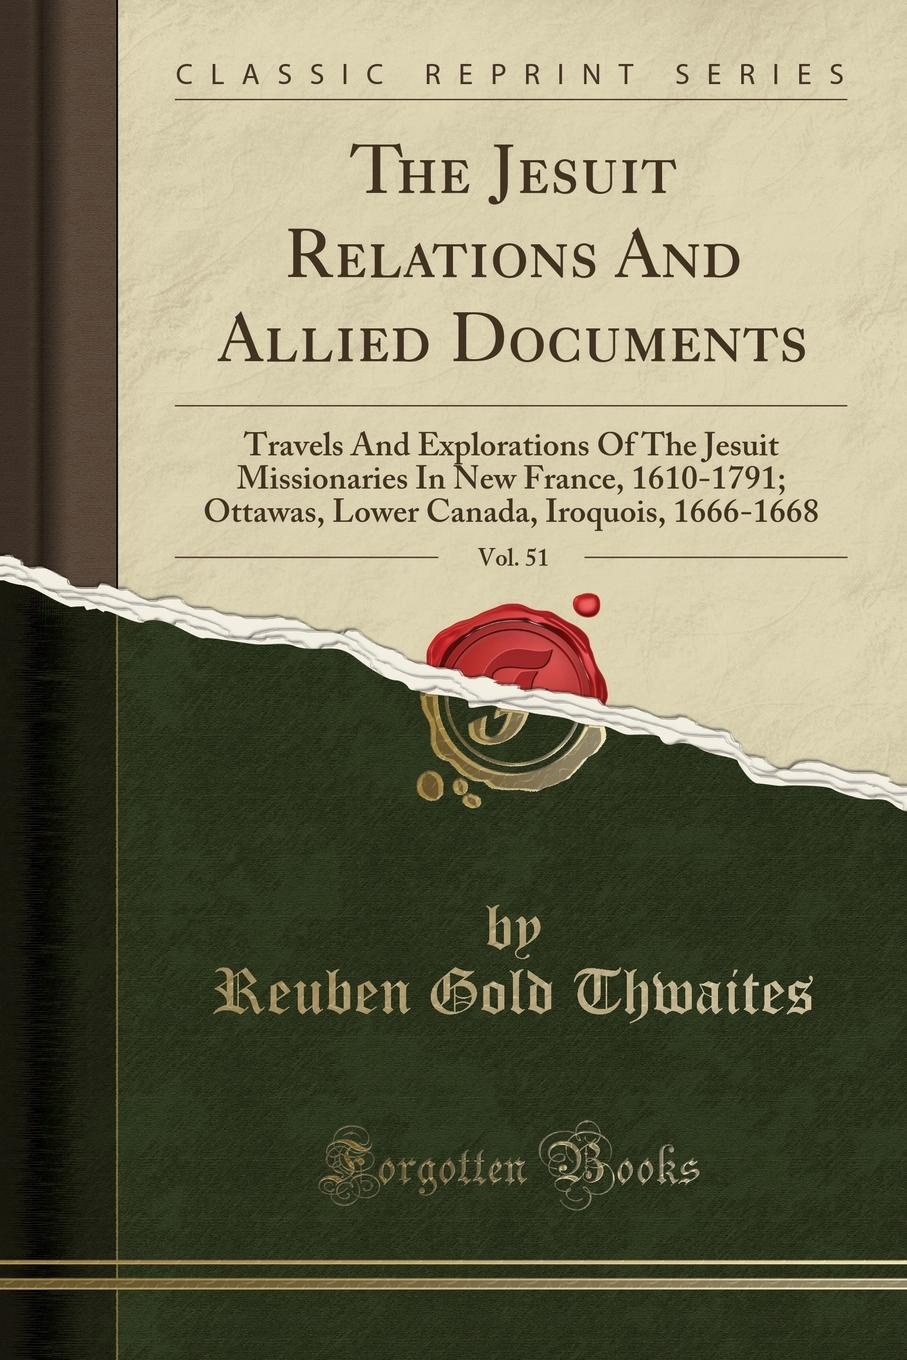 The-Jesuit-Relations-And-Allied-Documents-Vol-51-Travels-And-Explorations-Of-The-Jesuit-Missionaries-In-New-France-1610-1791-Ottawas-Lower-Canada-Iroq